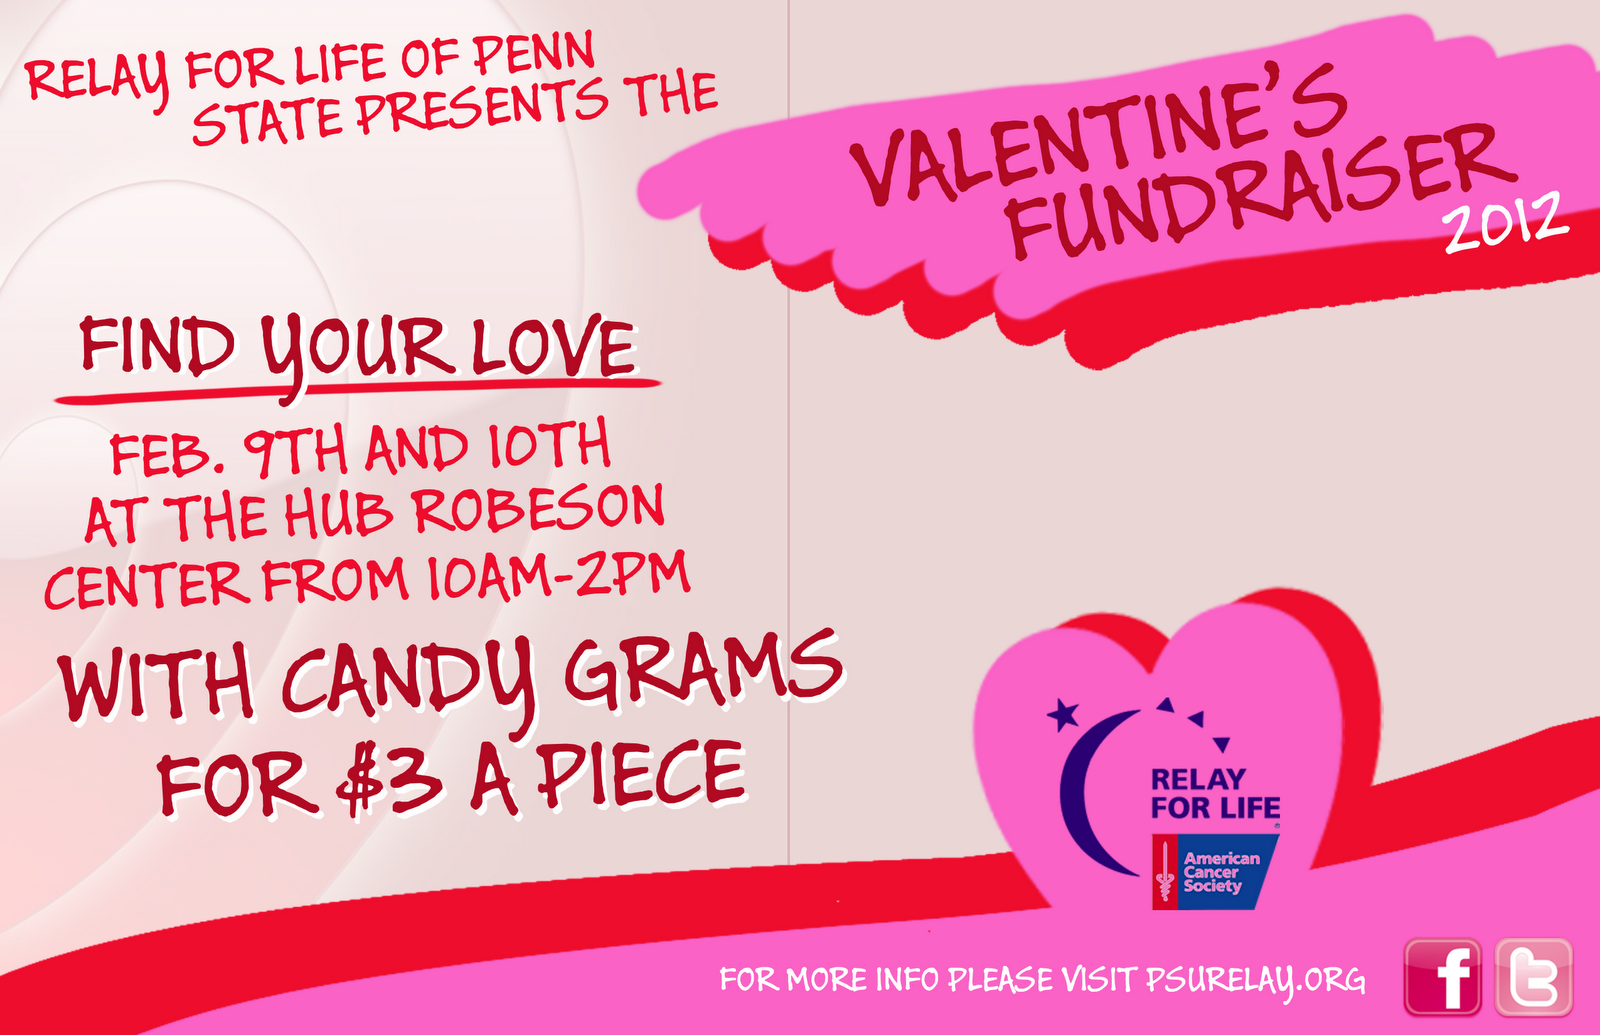 Relay For Life: Valentine's Fundraiser!